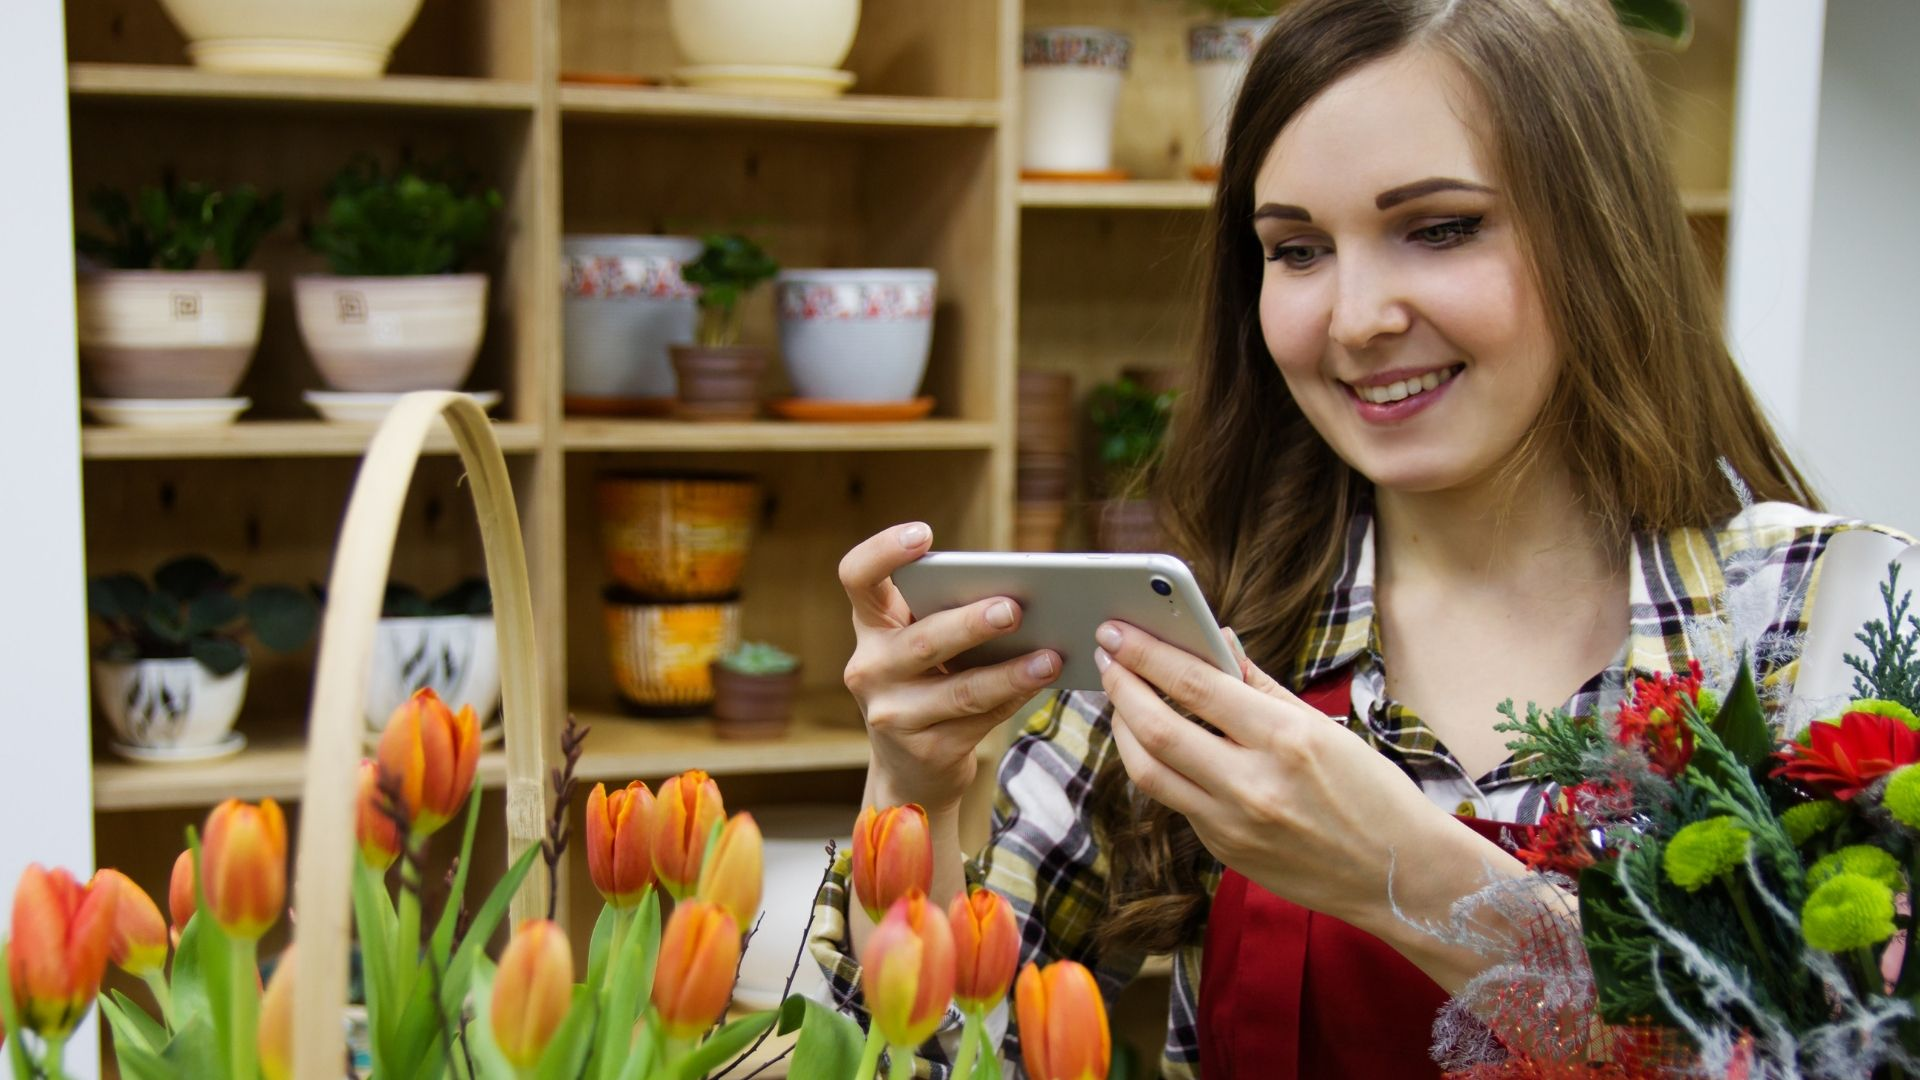 14 Benefits of Video Marketing for Small Businesses